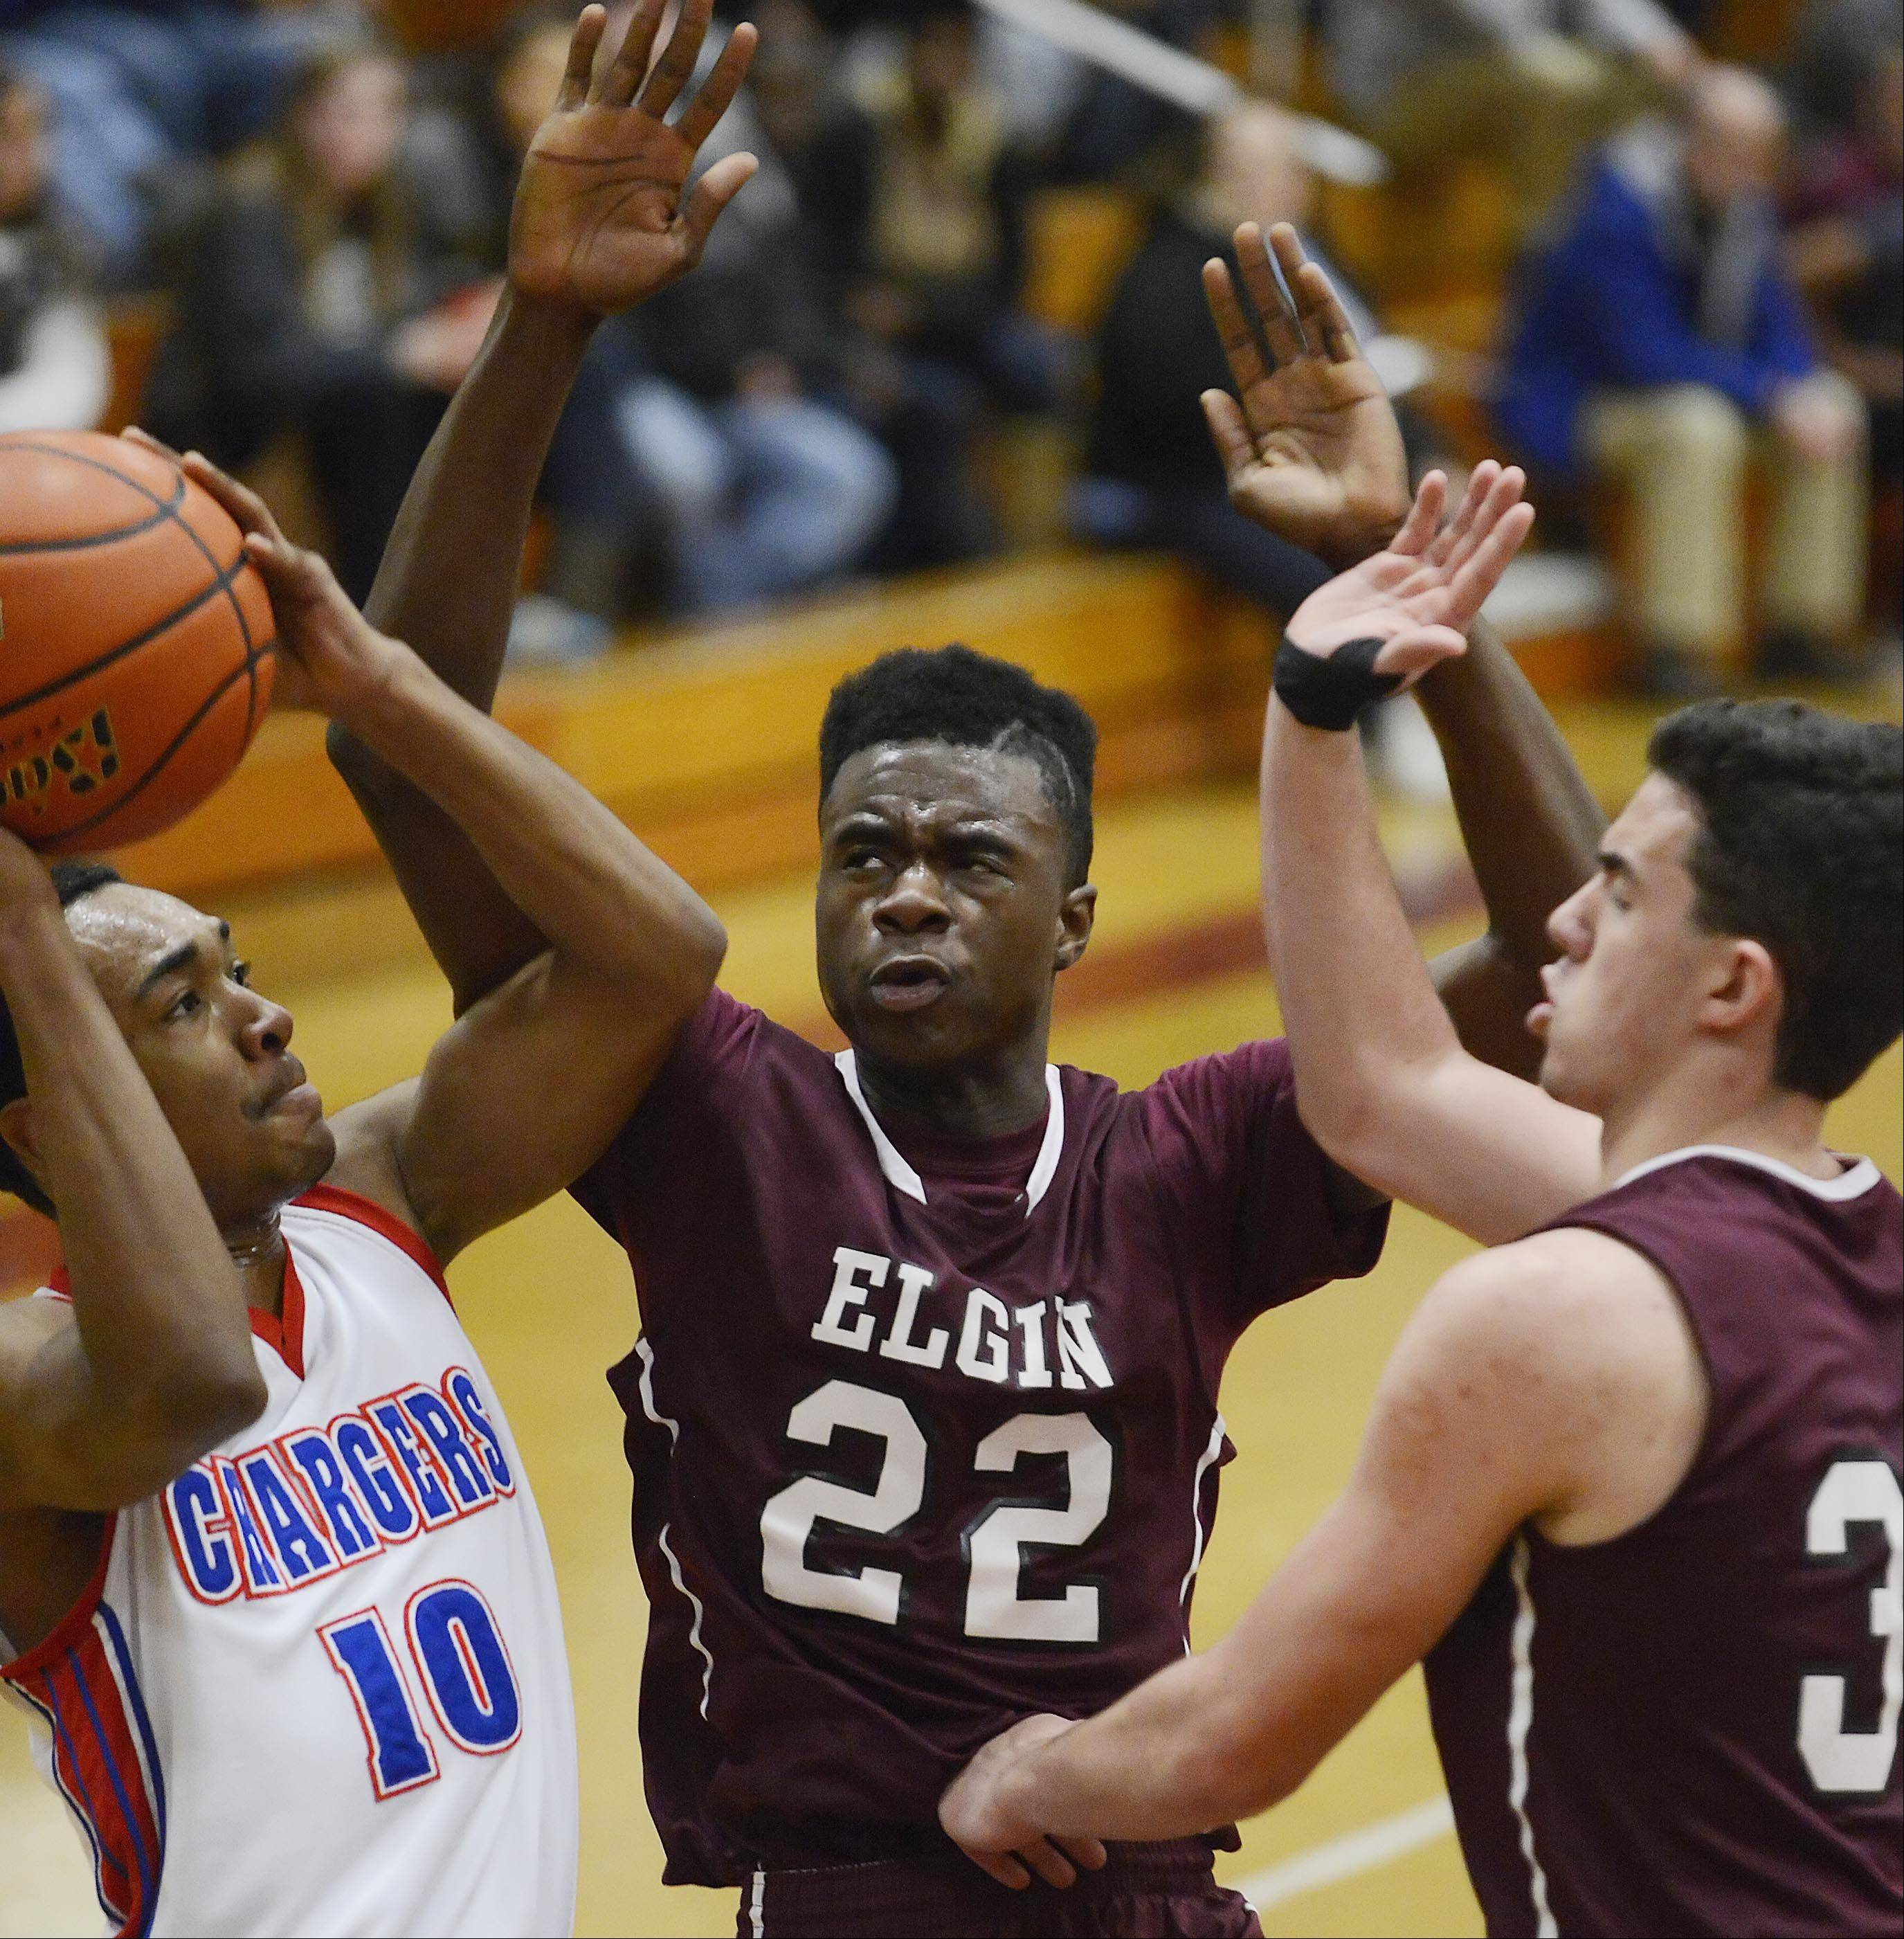 Elgin�s Desmond Sanders and Mike Hanneman defend Dundee-Crown�s Kiwaun Seals Thursday in the quarterfinal game of the Elgin Holiday Tournament.